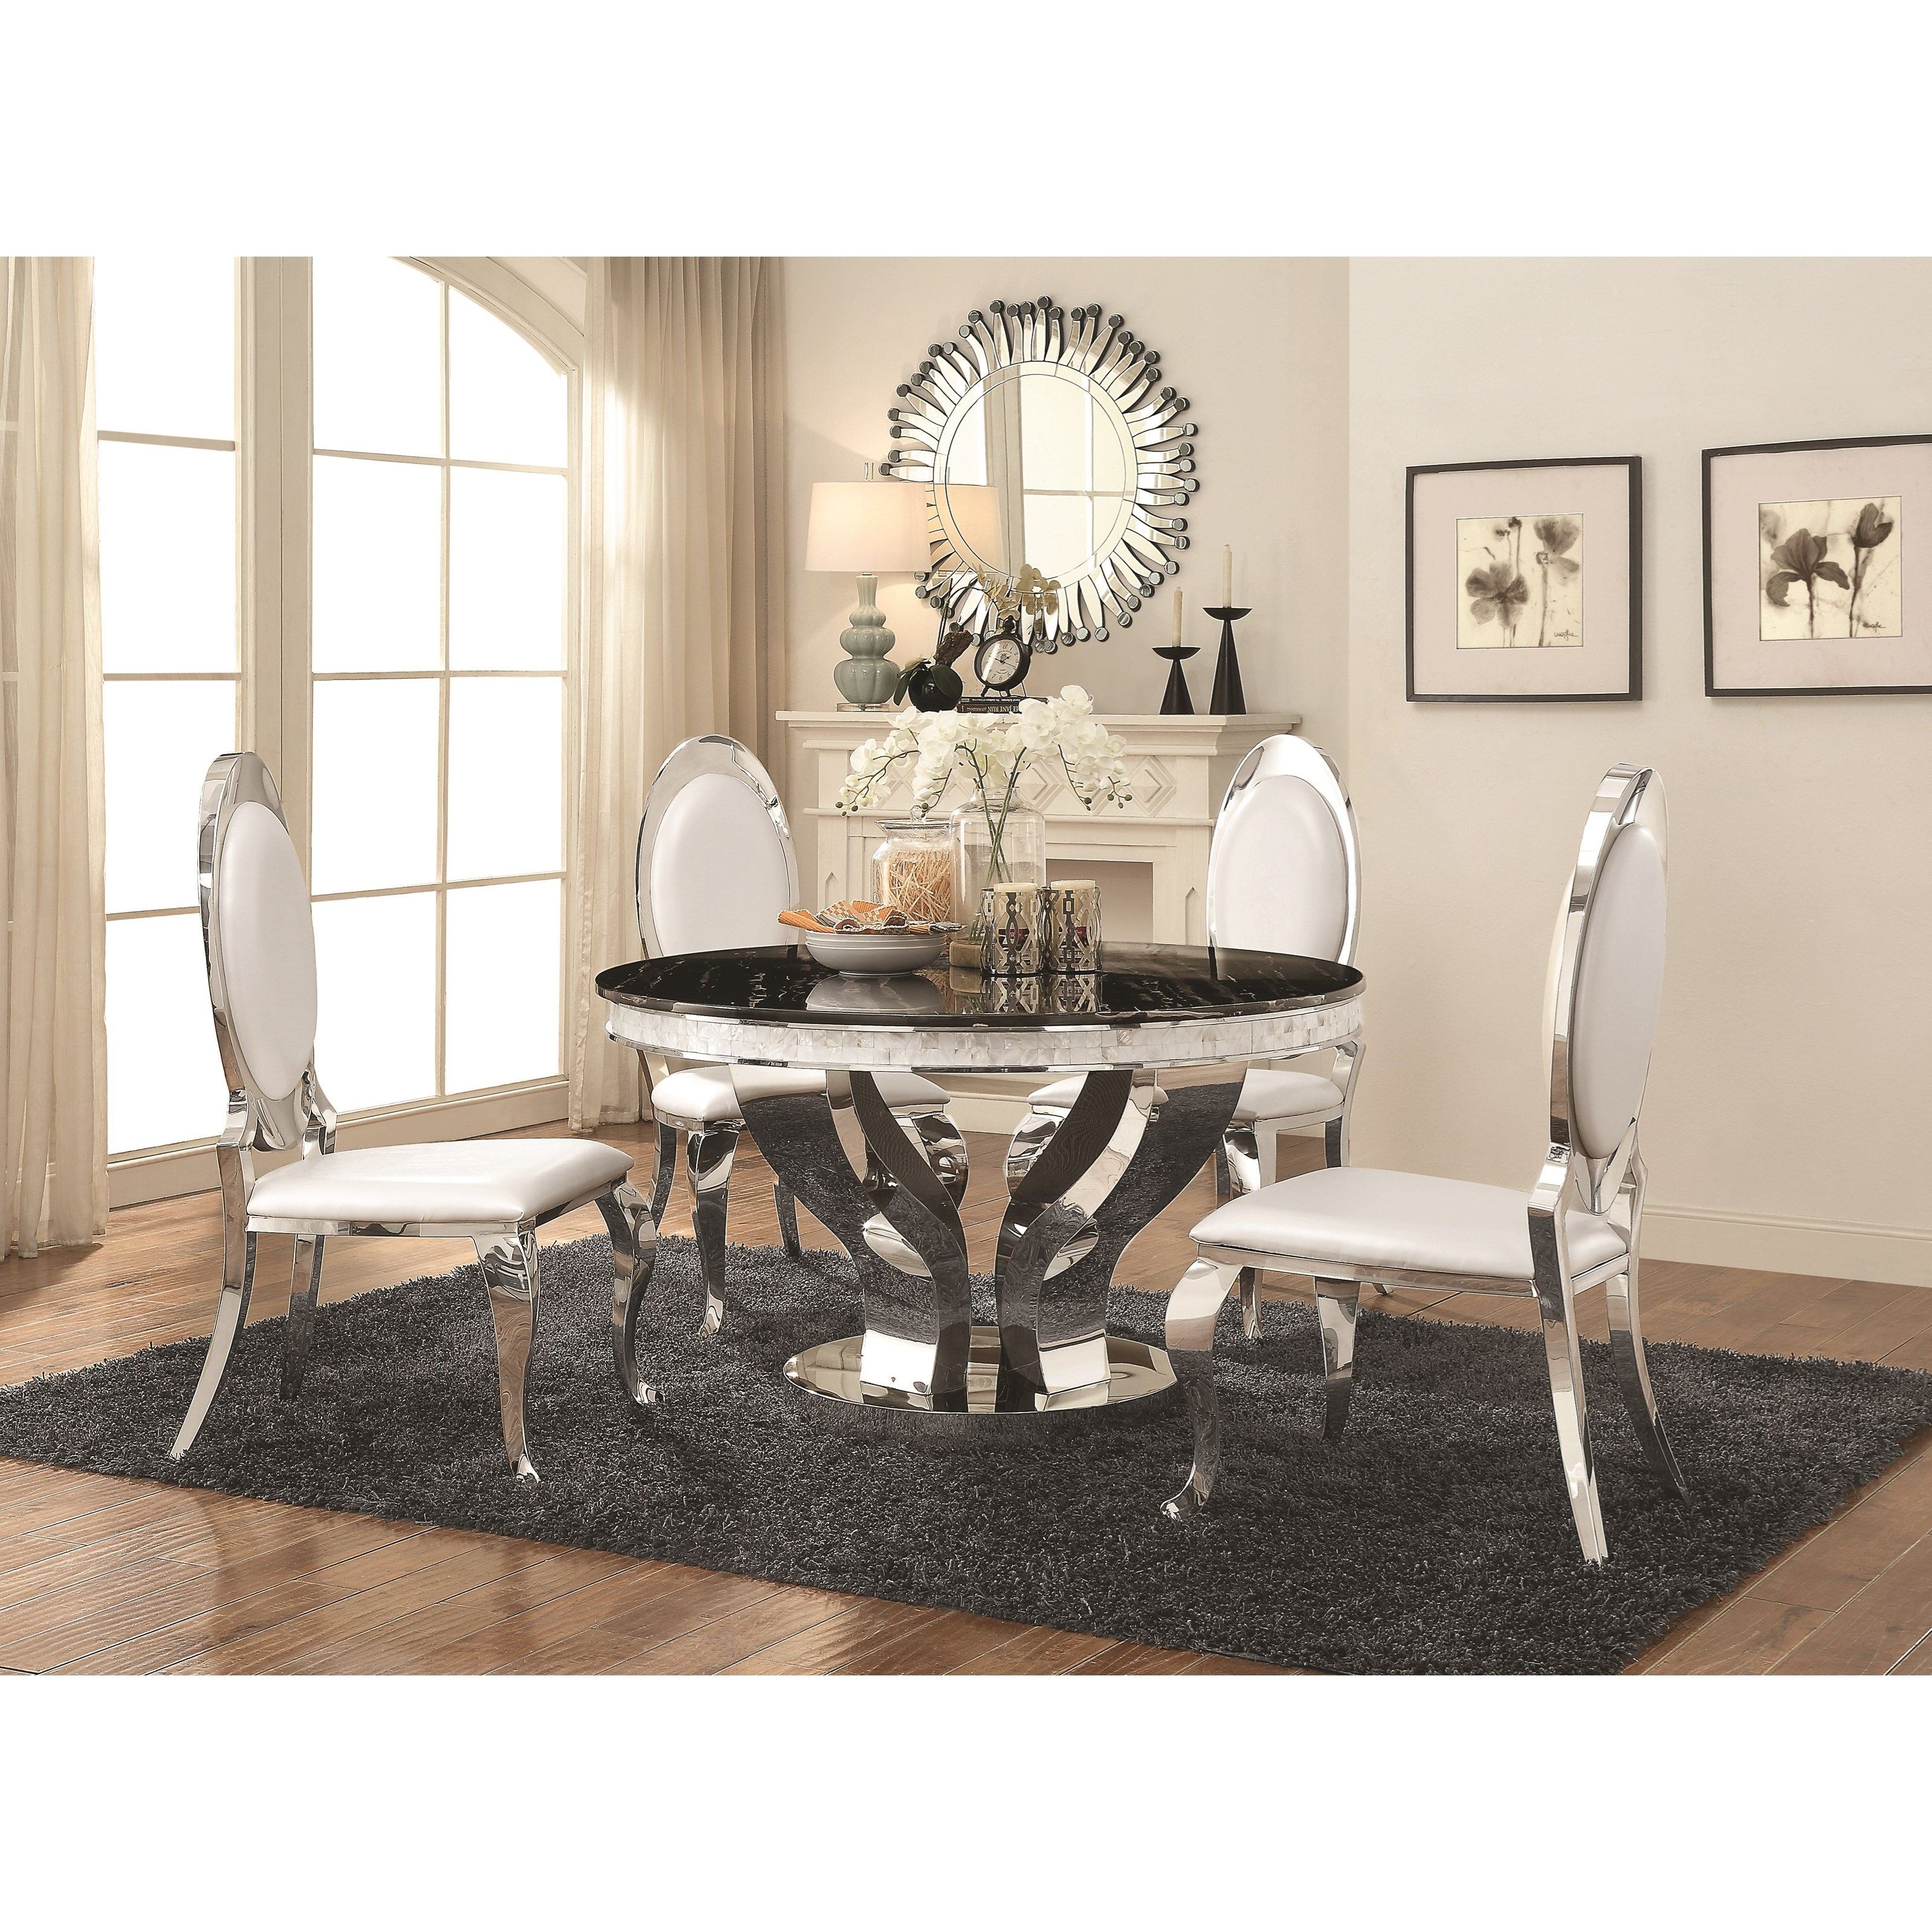 Ashleys Furniture Anchorage: Coaster Anchorage Faux Marble Dining Table With Chrome